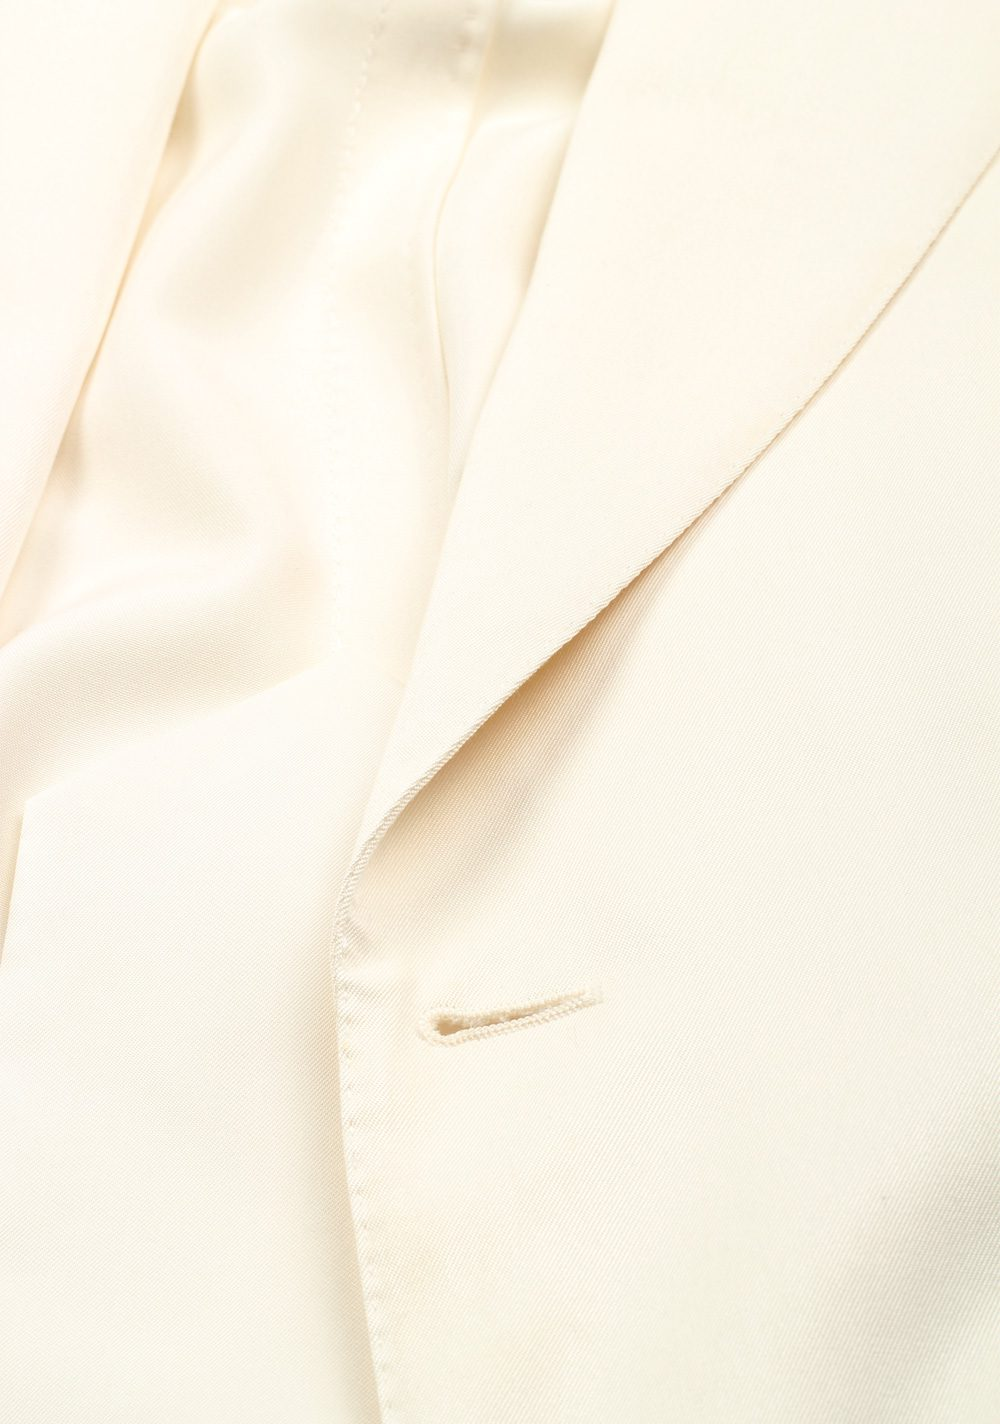 TOM FORD Shelton Off White Sport Coat Size 48 / 38R U.S. In Silk | Costume Limité